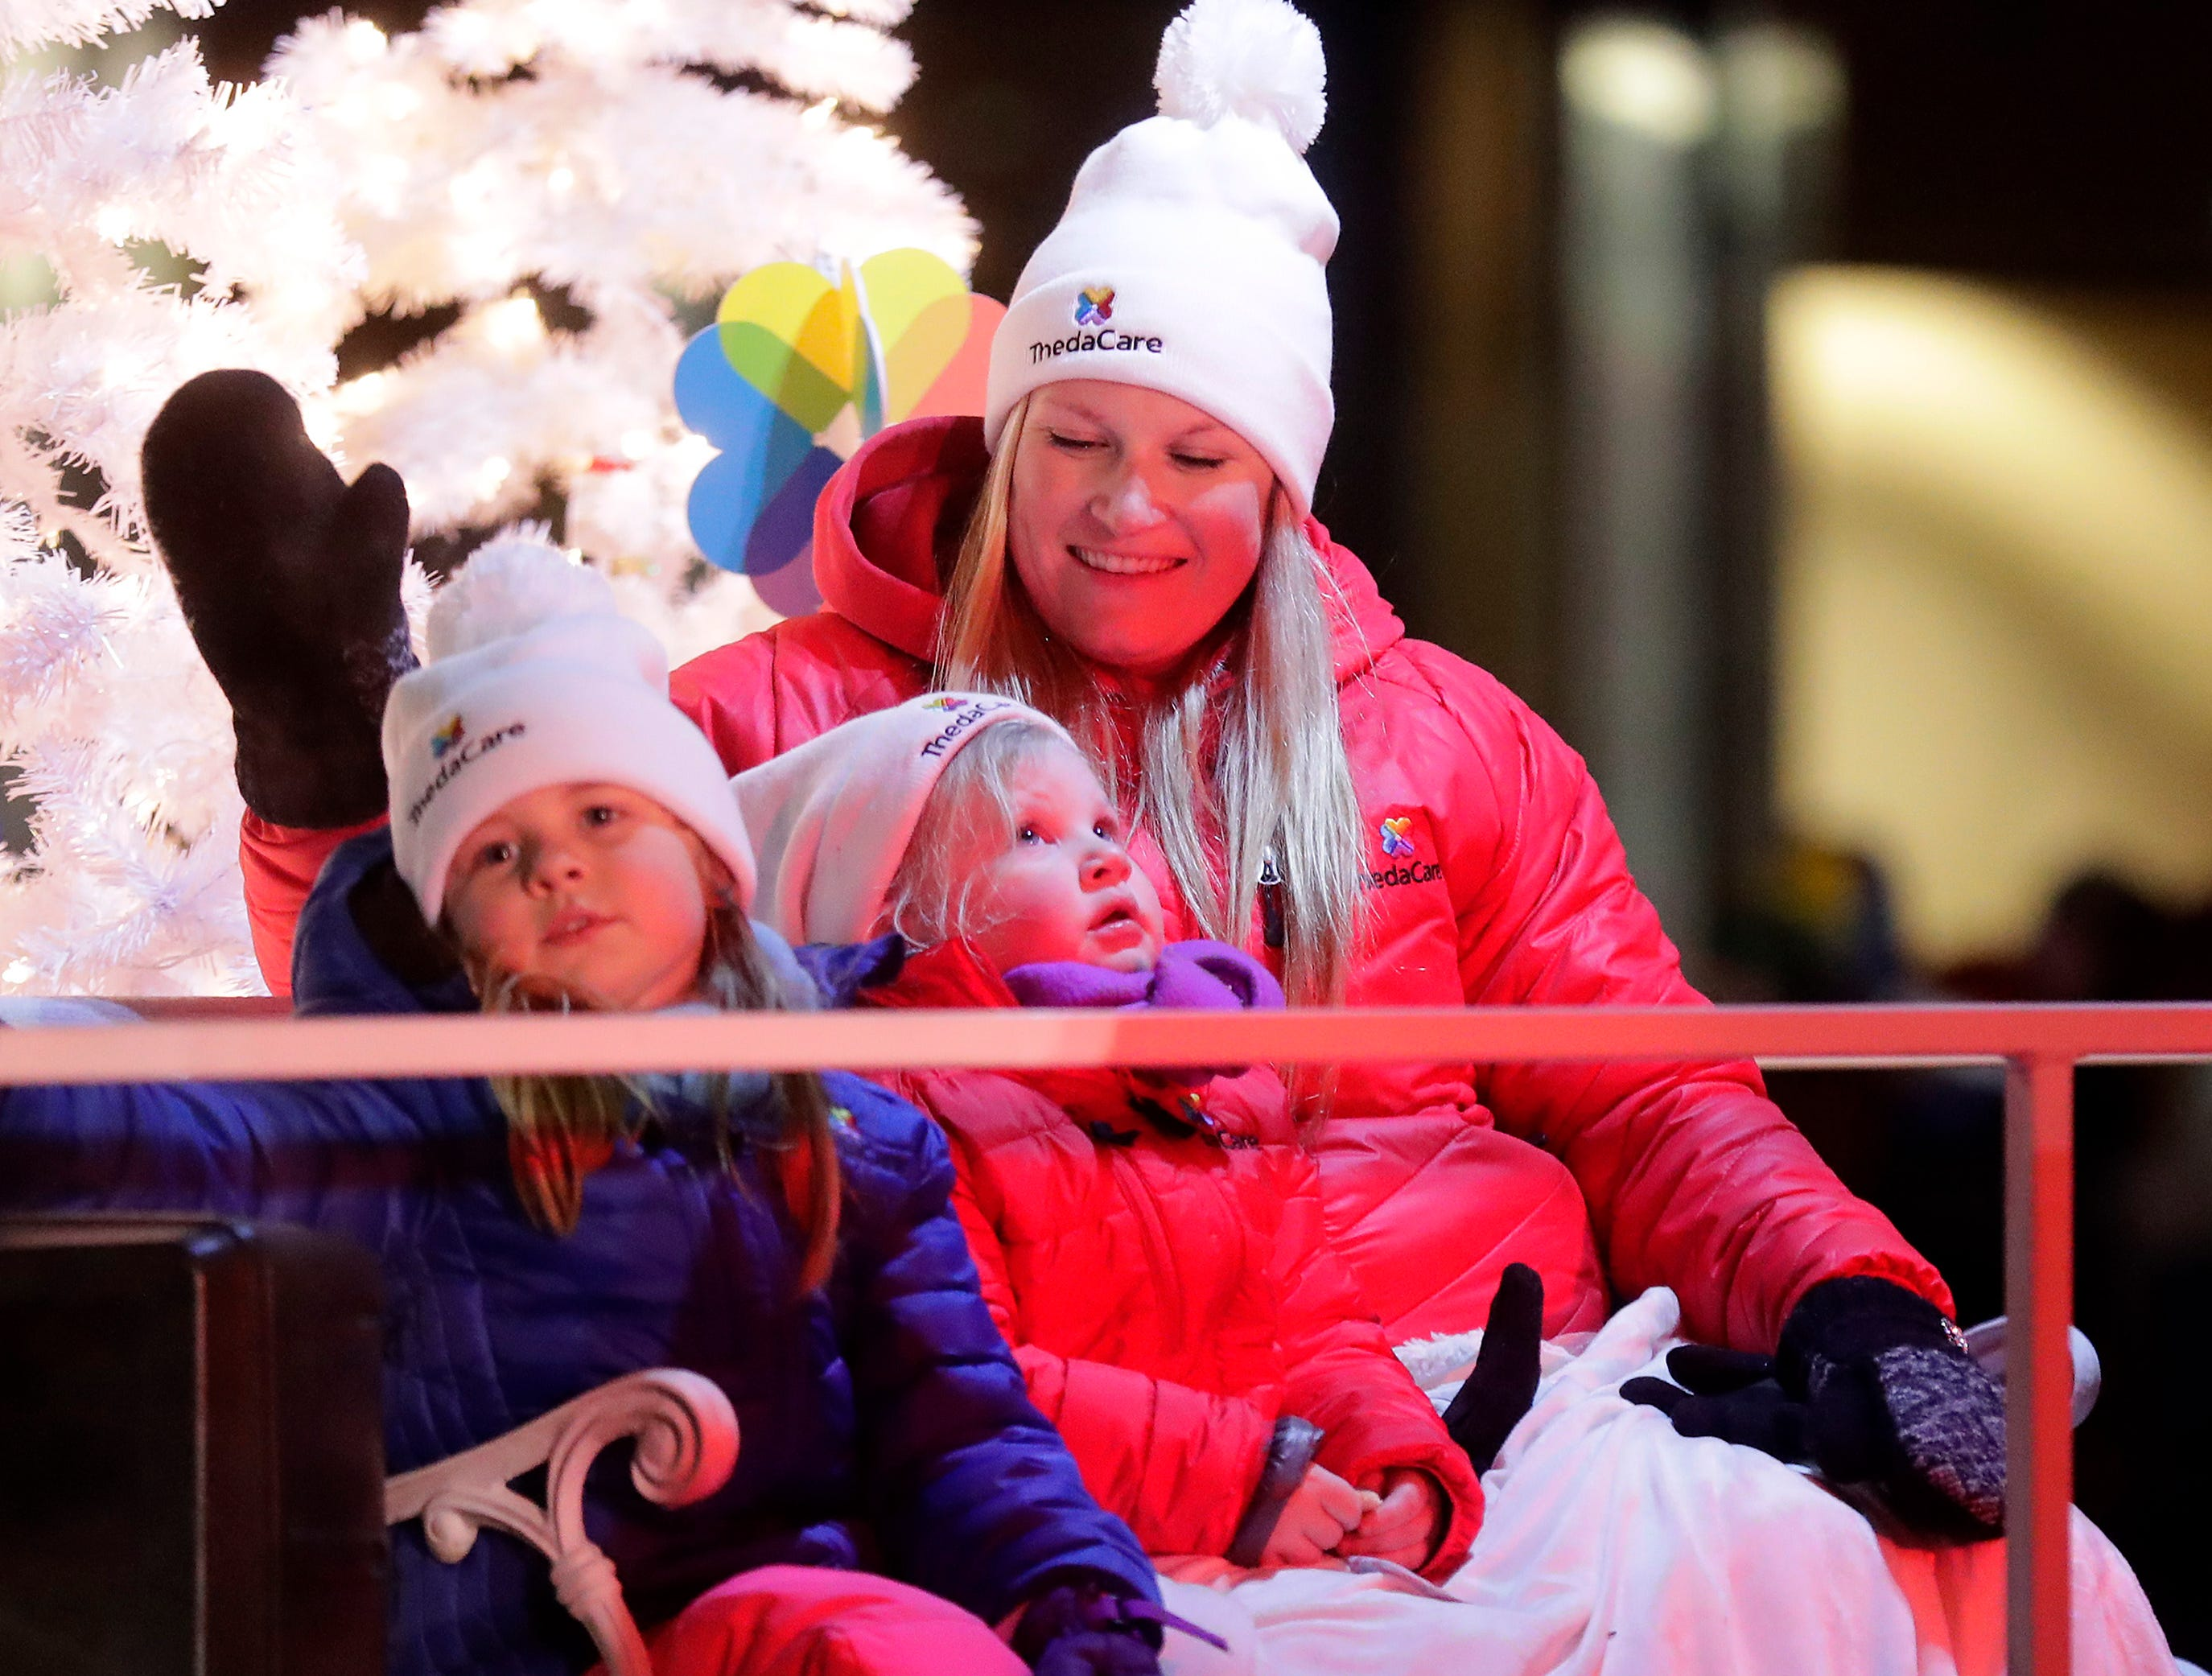 """The ThedaCare float during the 48th Annual Downtown Appleton Christmas Parade on Tuesday, Nov. 20, 2018 in Appleton, Wis. This year's theme was """"Home for the Holidays."""" Wm. Glasheen/USA TODAY NETWORK-Wisconsin."""